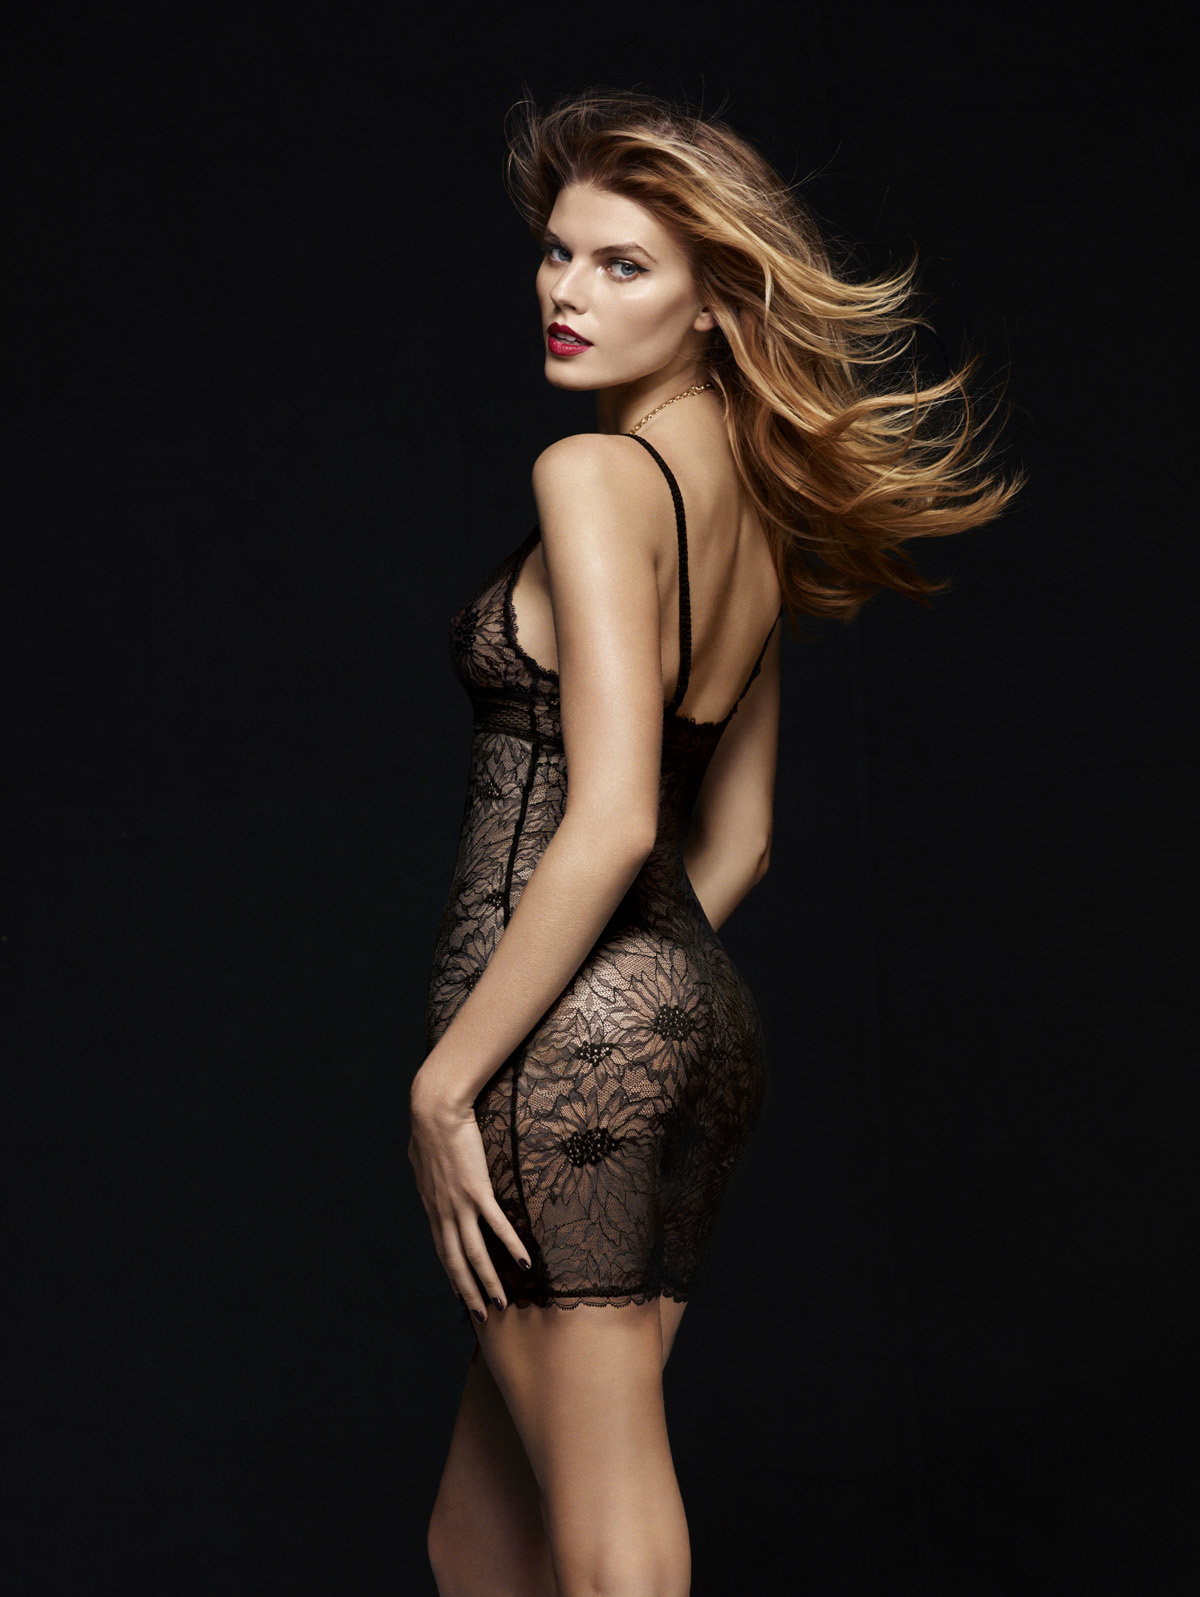 Maryna-Linchuk-Chantelle-lingerie-3